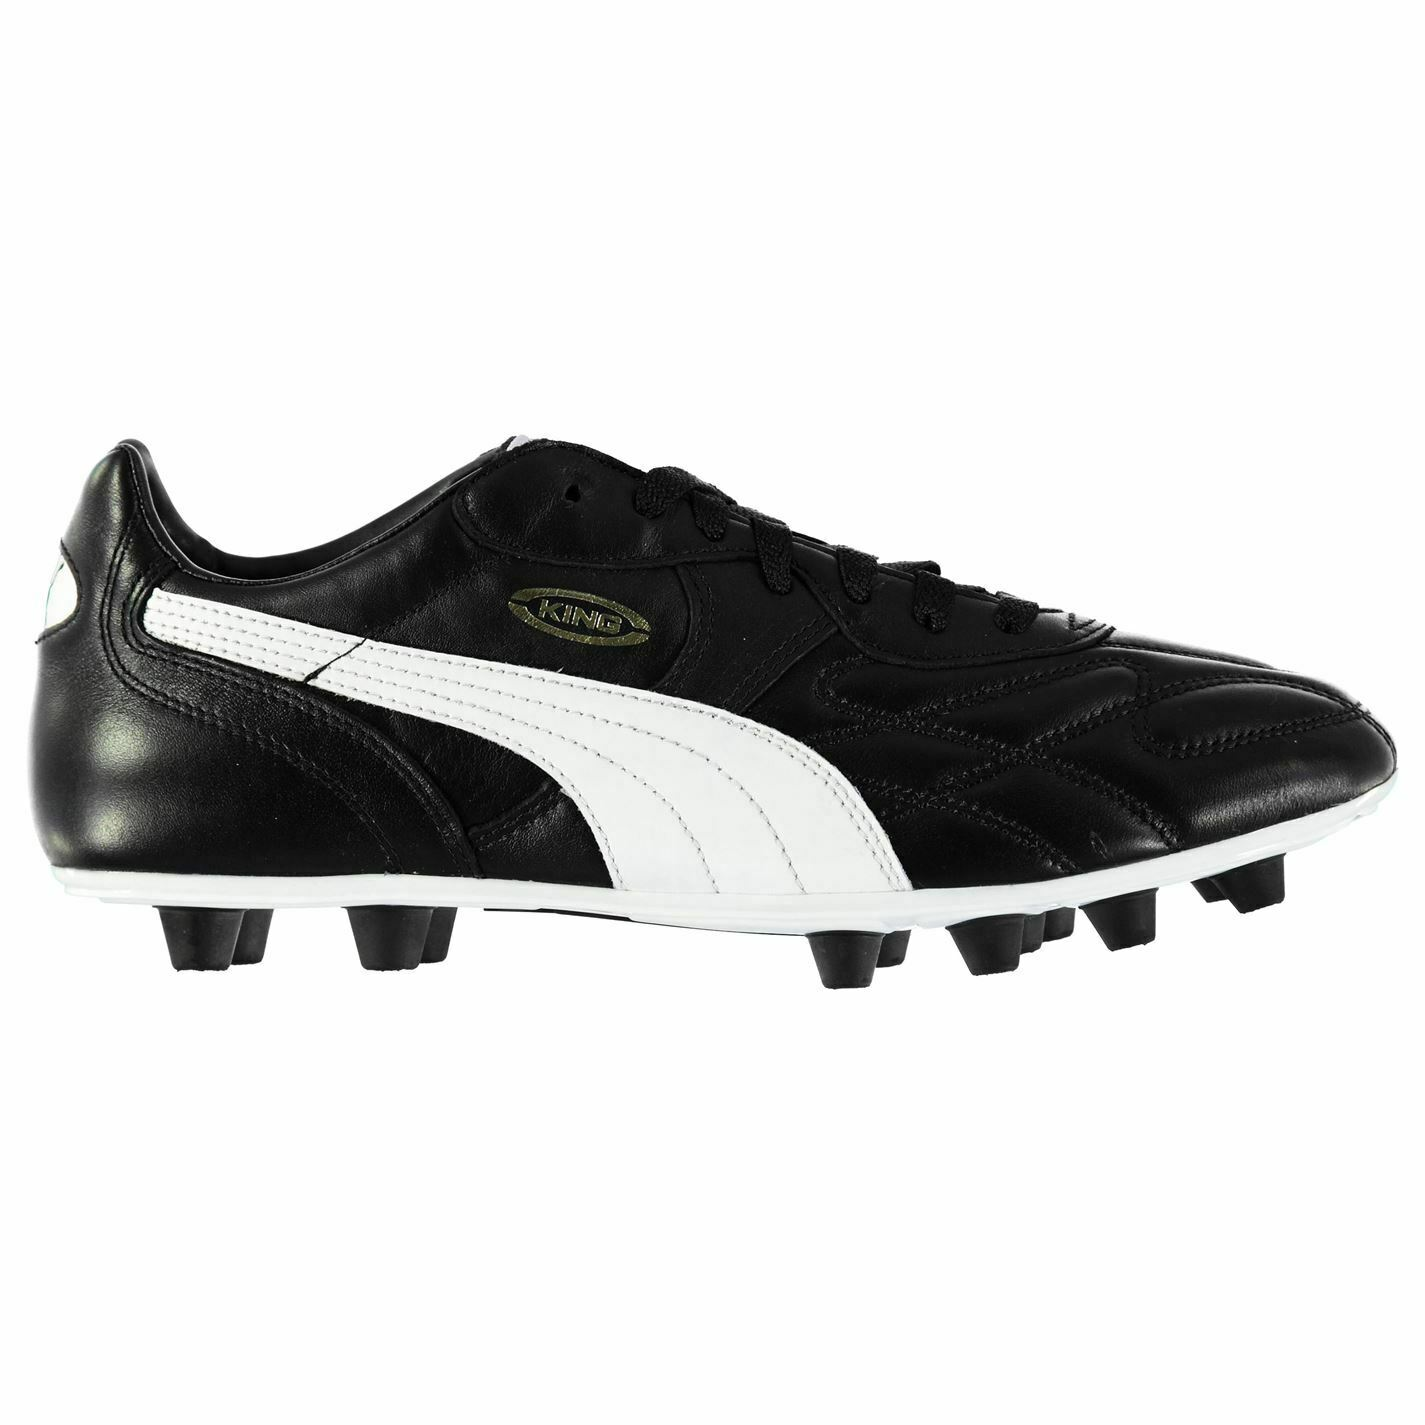 Puma King Top di FG Football Boots Mens Gents Firm Ground Laces Fastened Studs